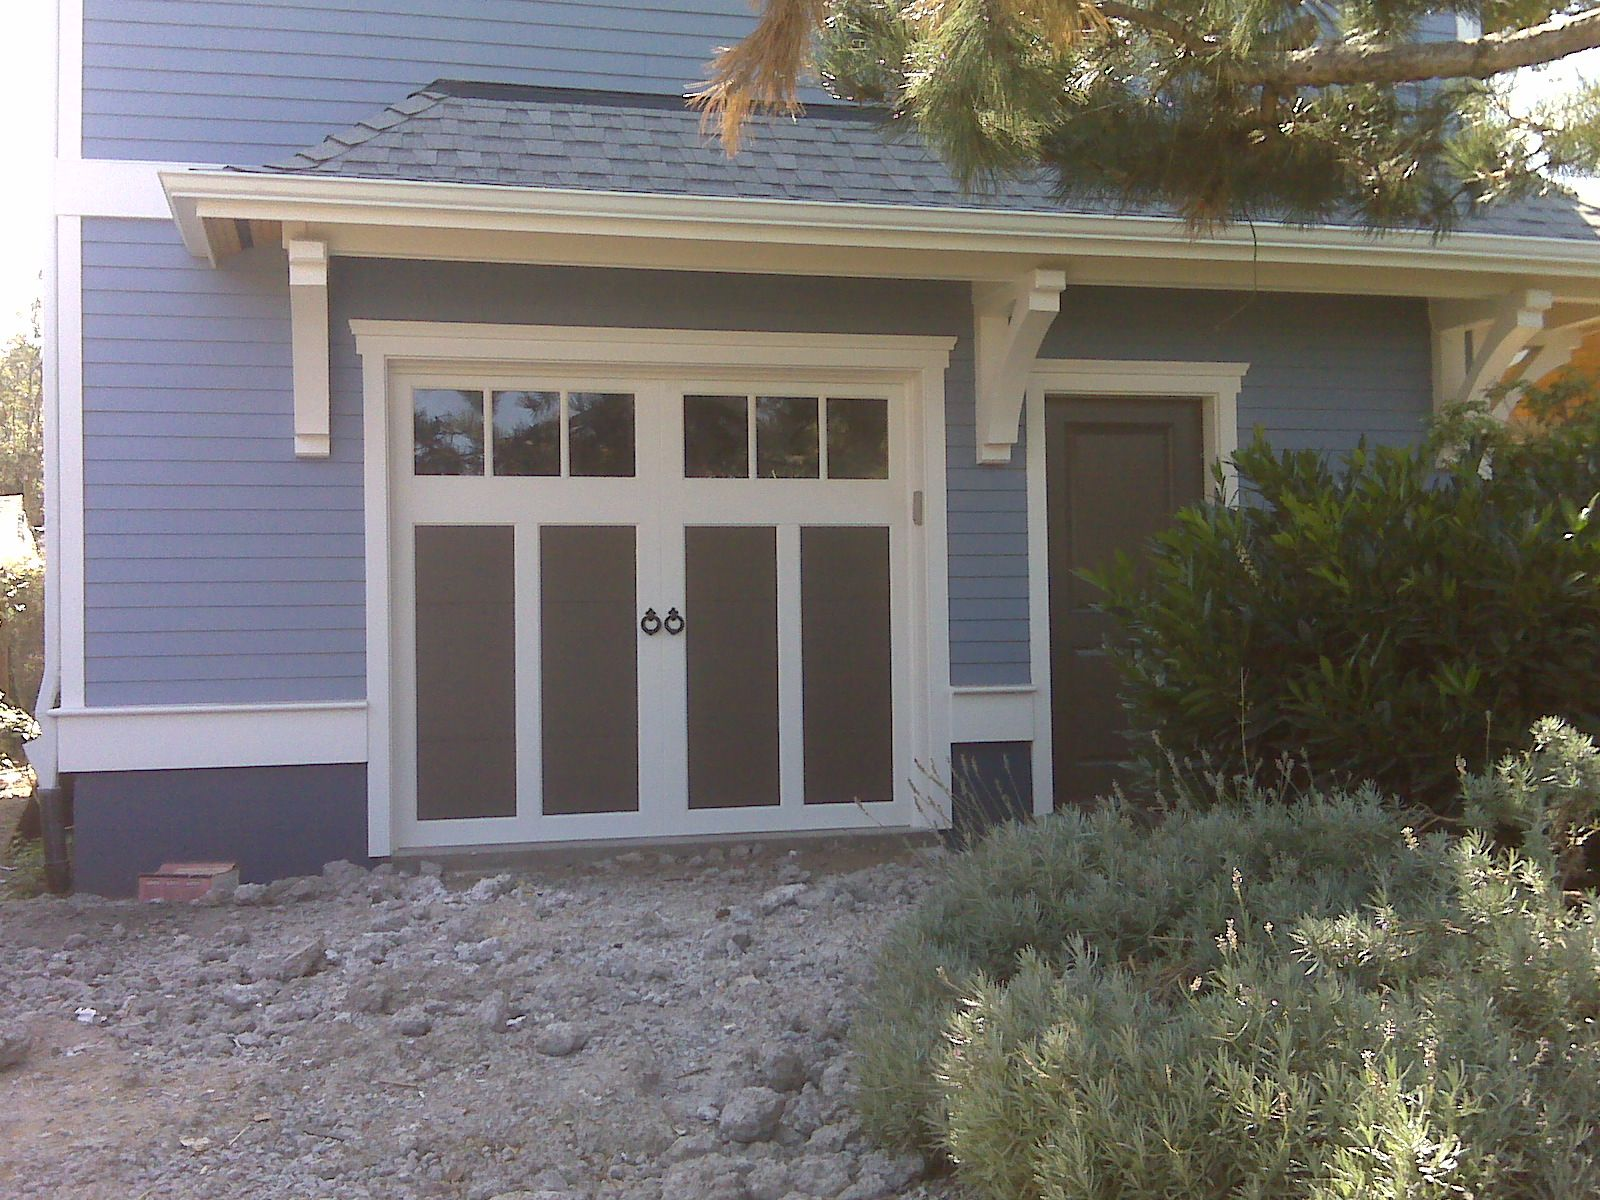 Clopay Coachman Collection Carriage House Garage Door Design  With Rec Windows Custom Painted To